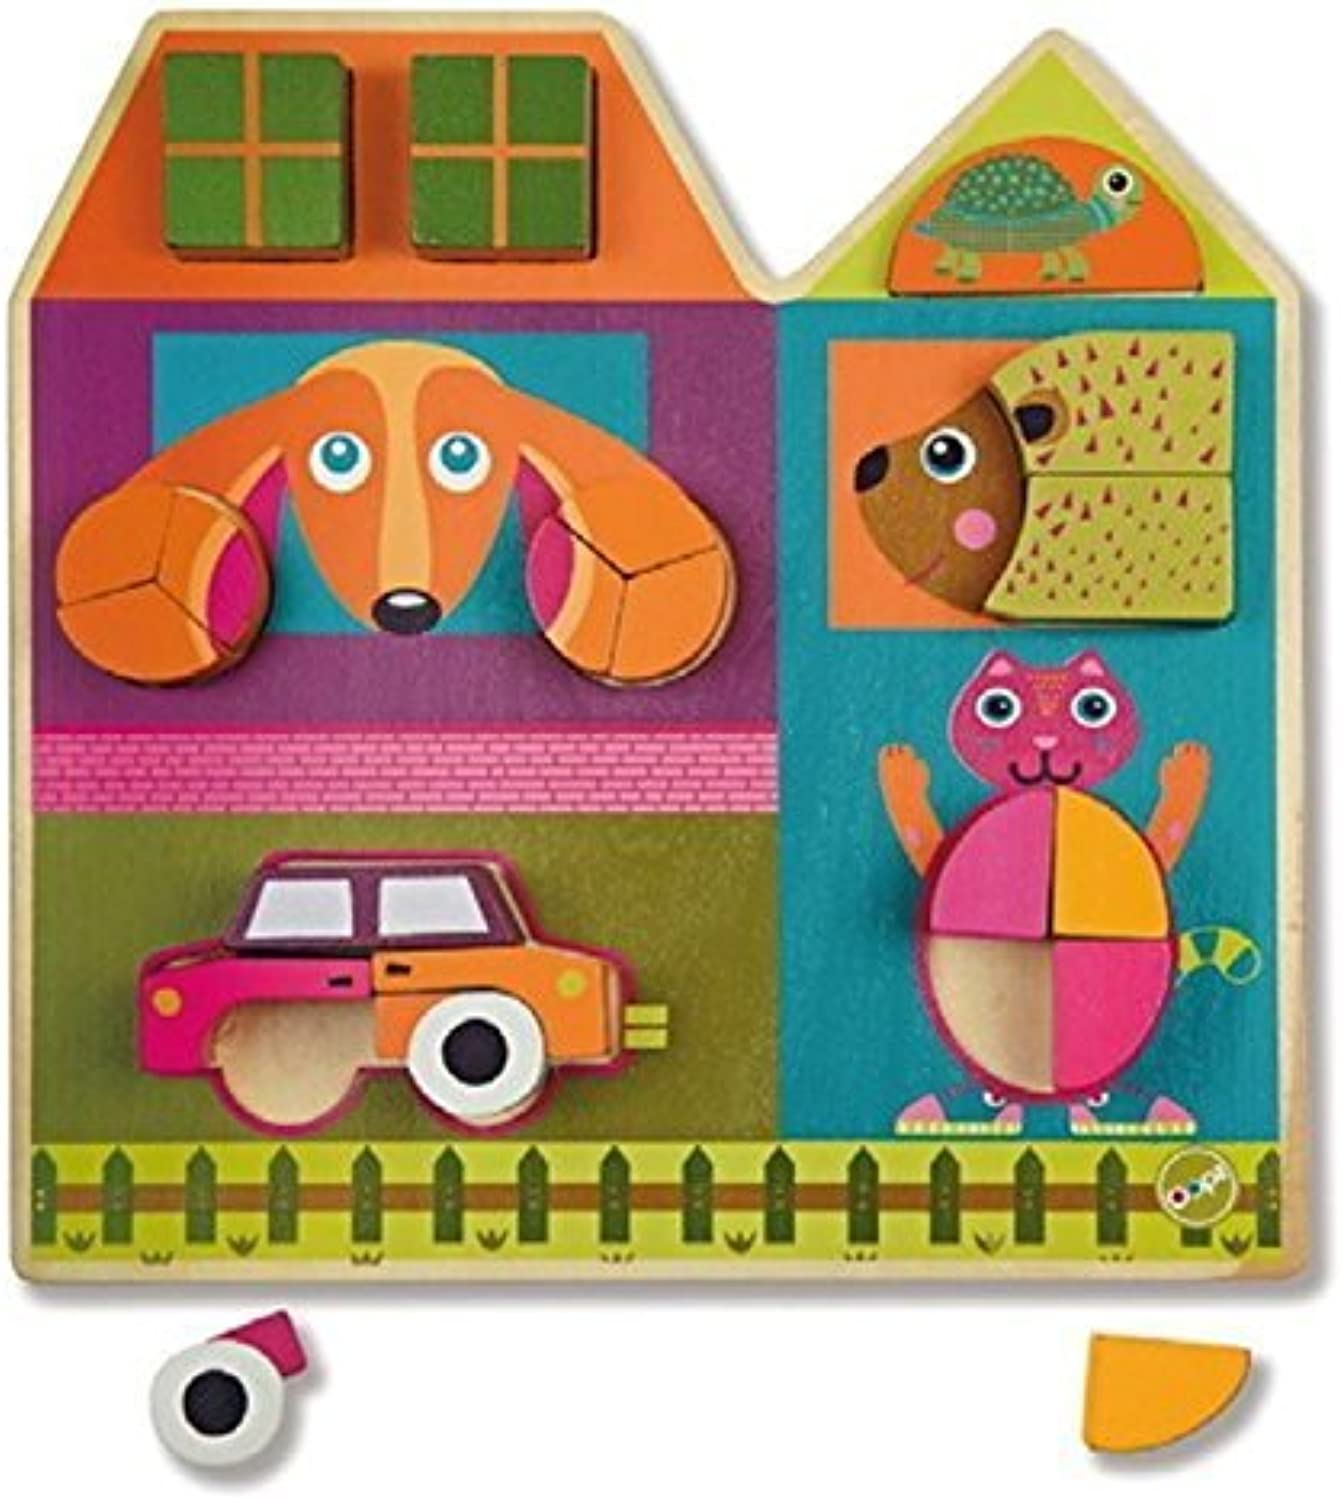 Oops Little Helper 3D Vibrant and Colourful Wooden Tree Puzzle with Animals and Car (19 Pieces) by Oops